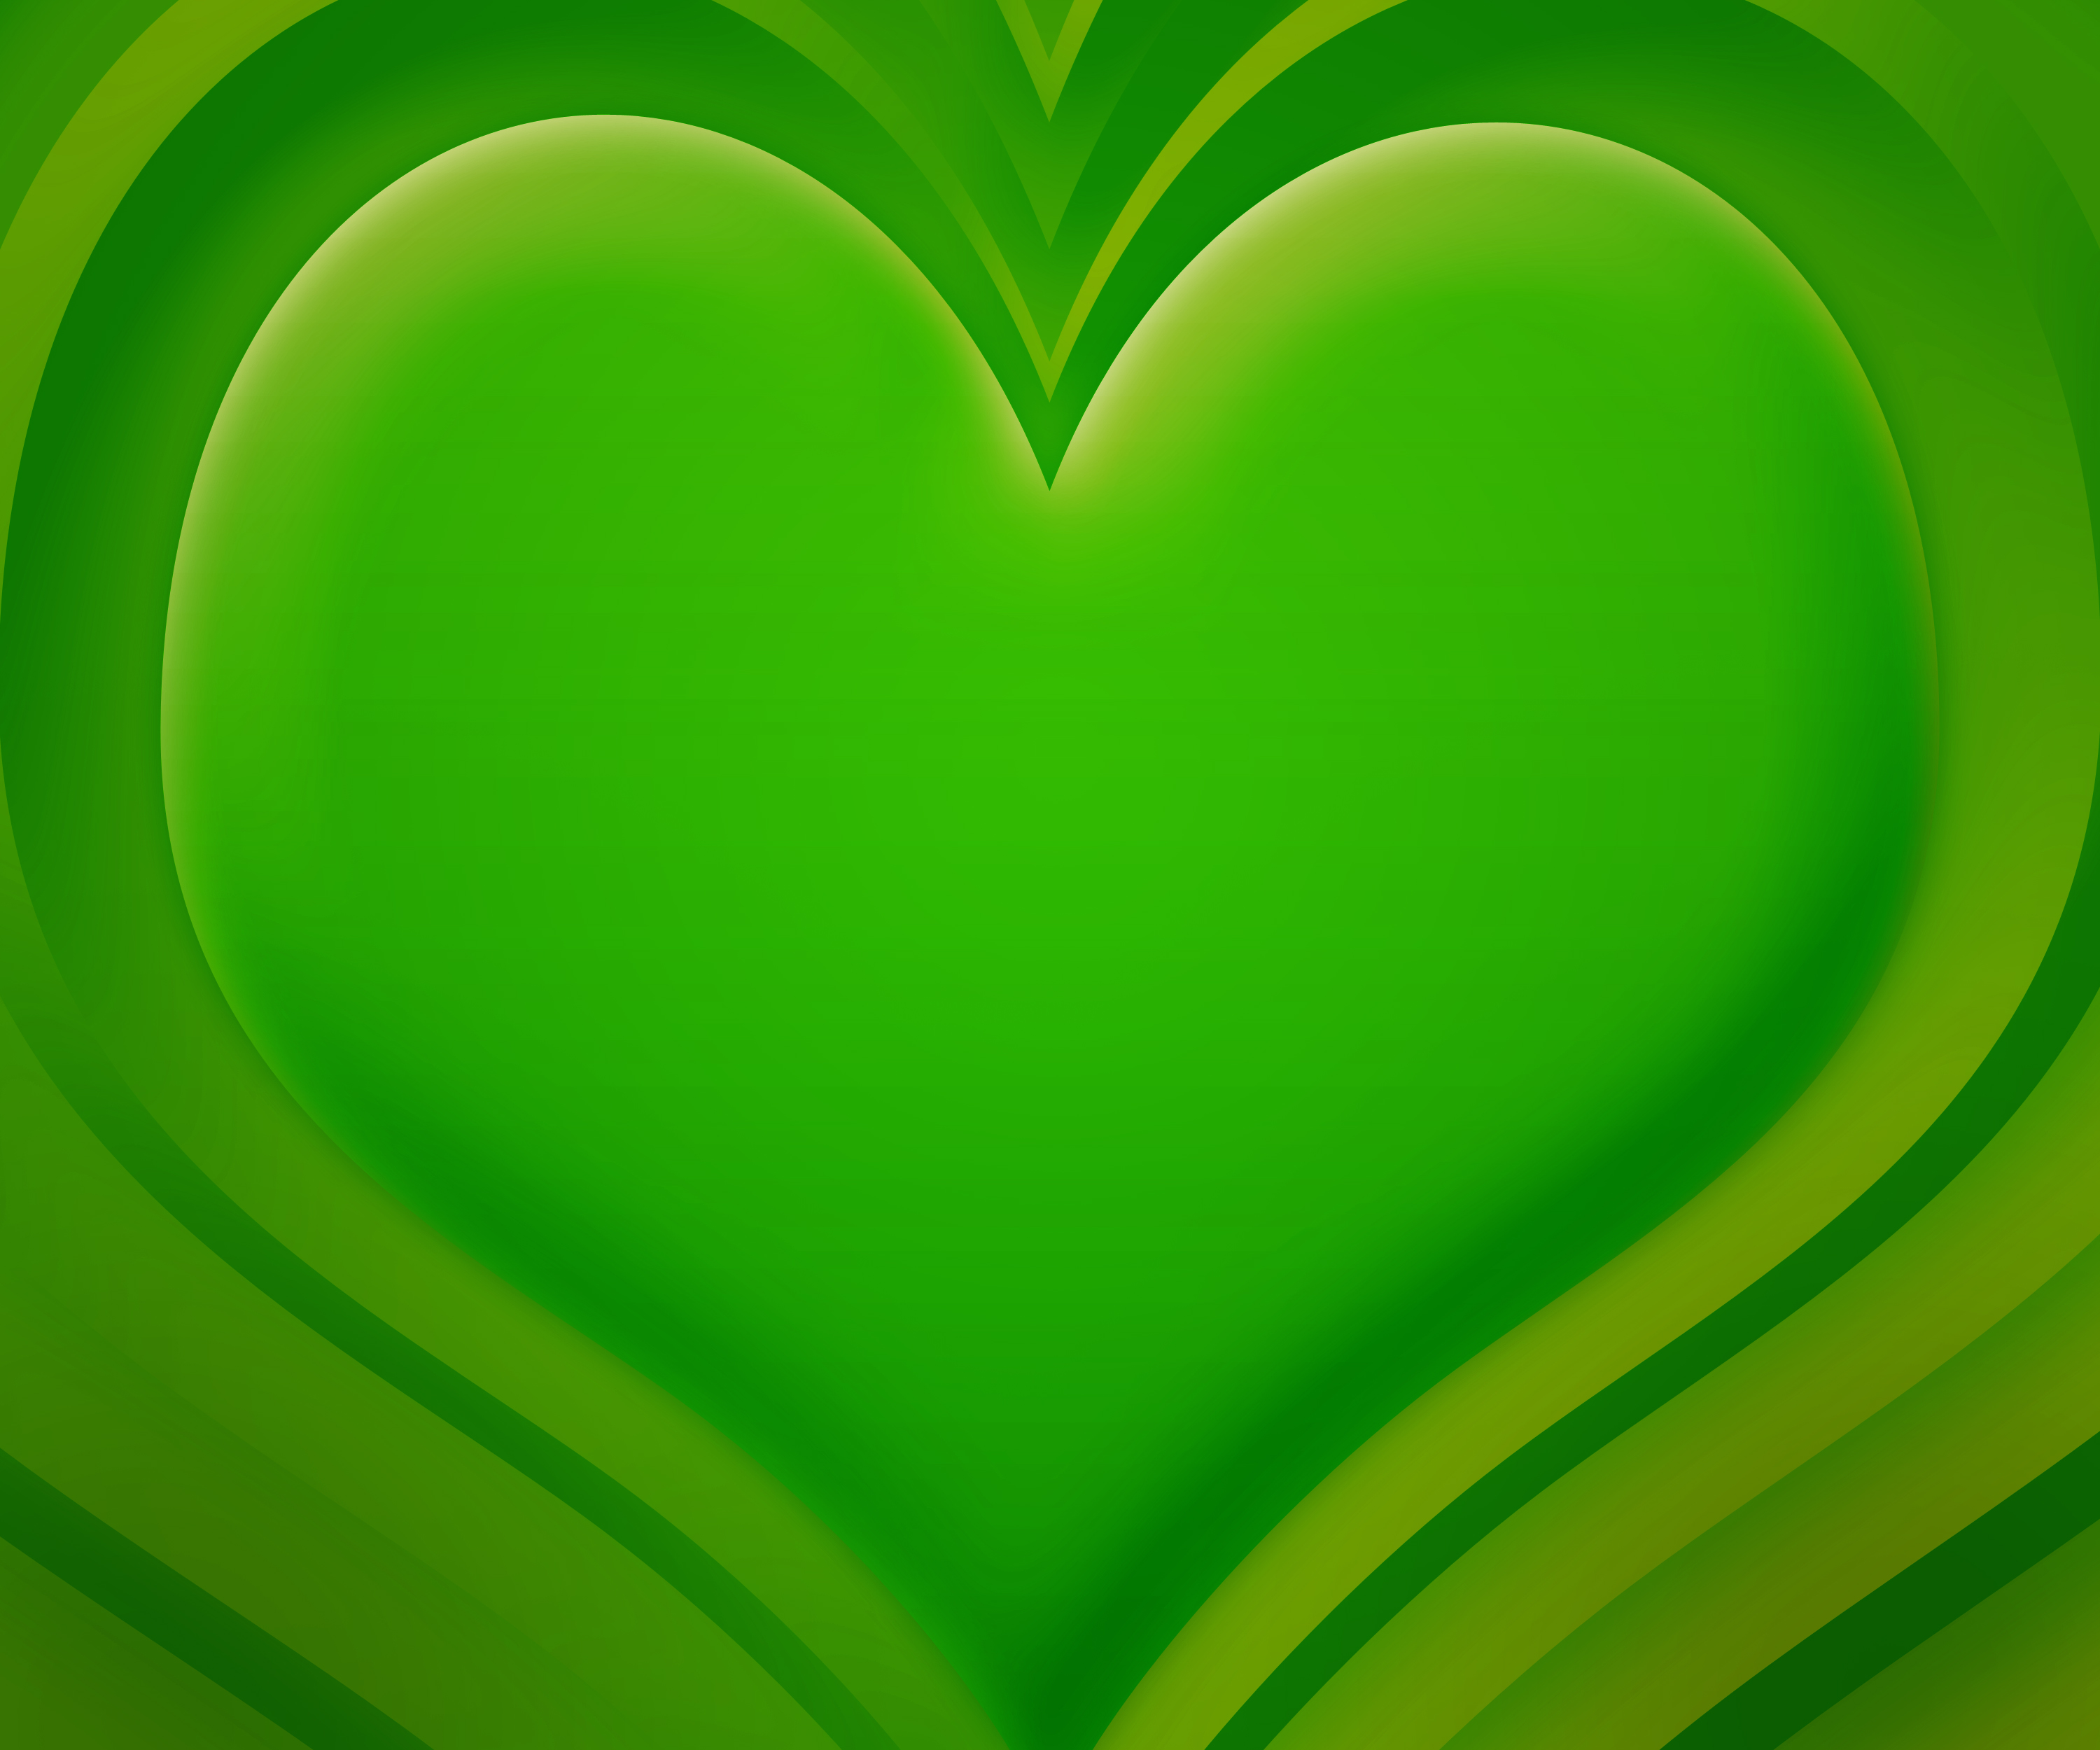 green hearts background - photo #14